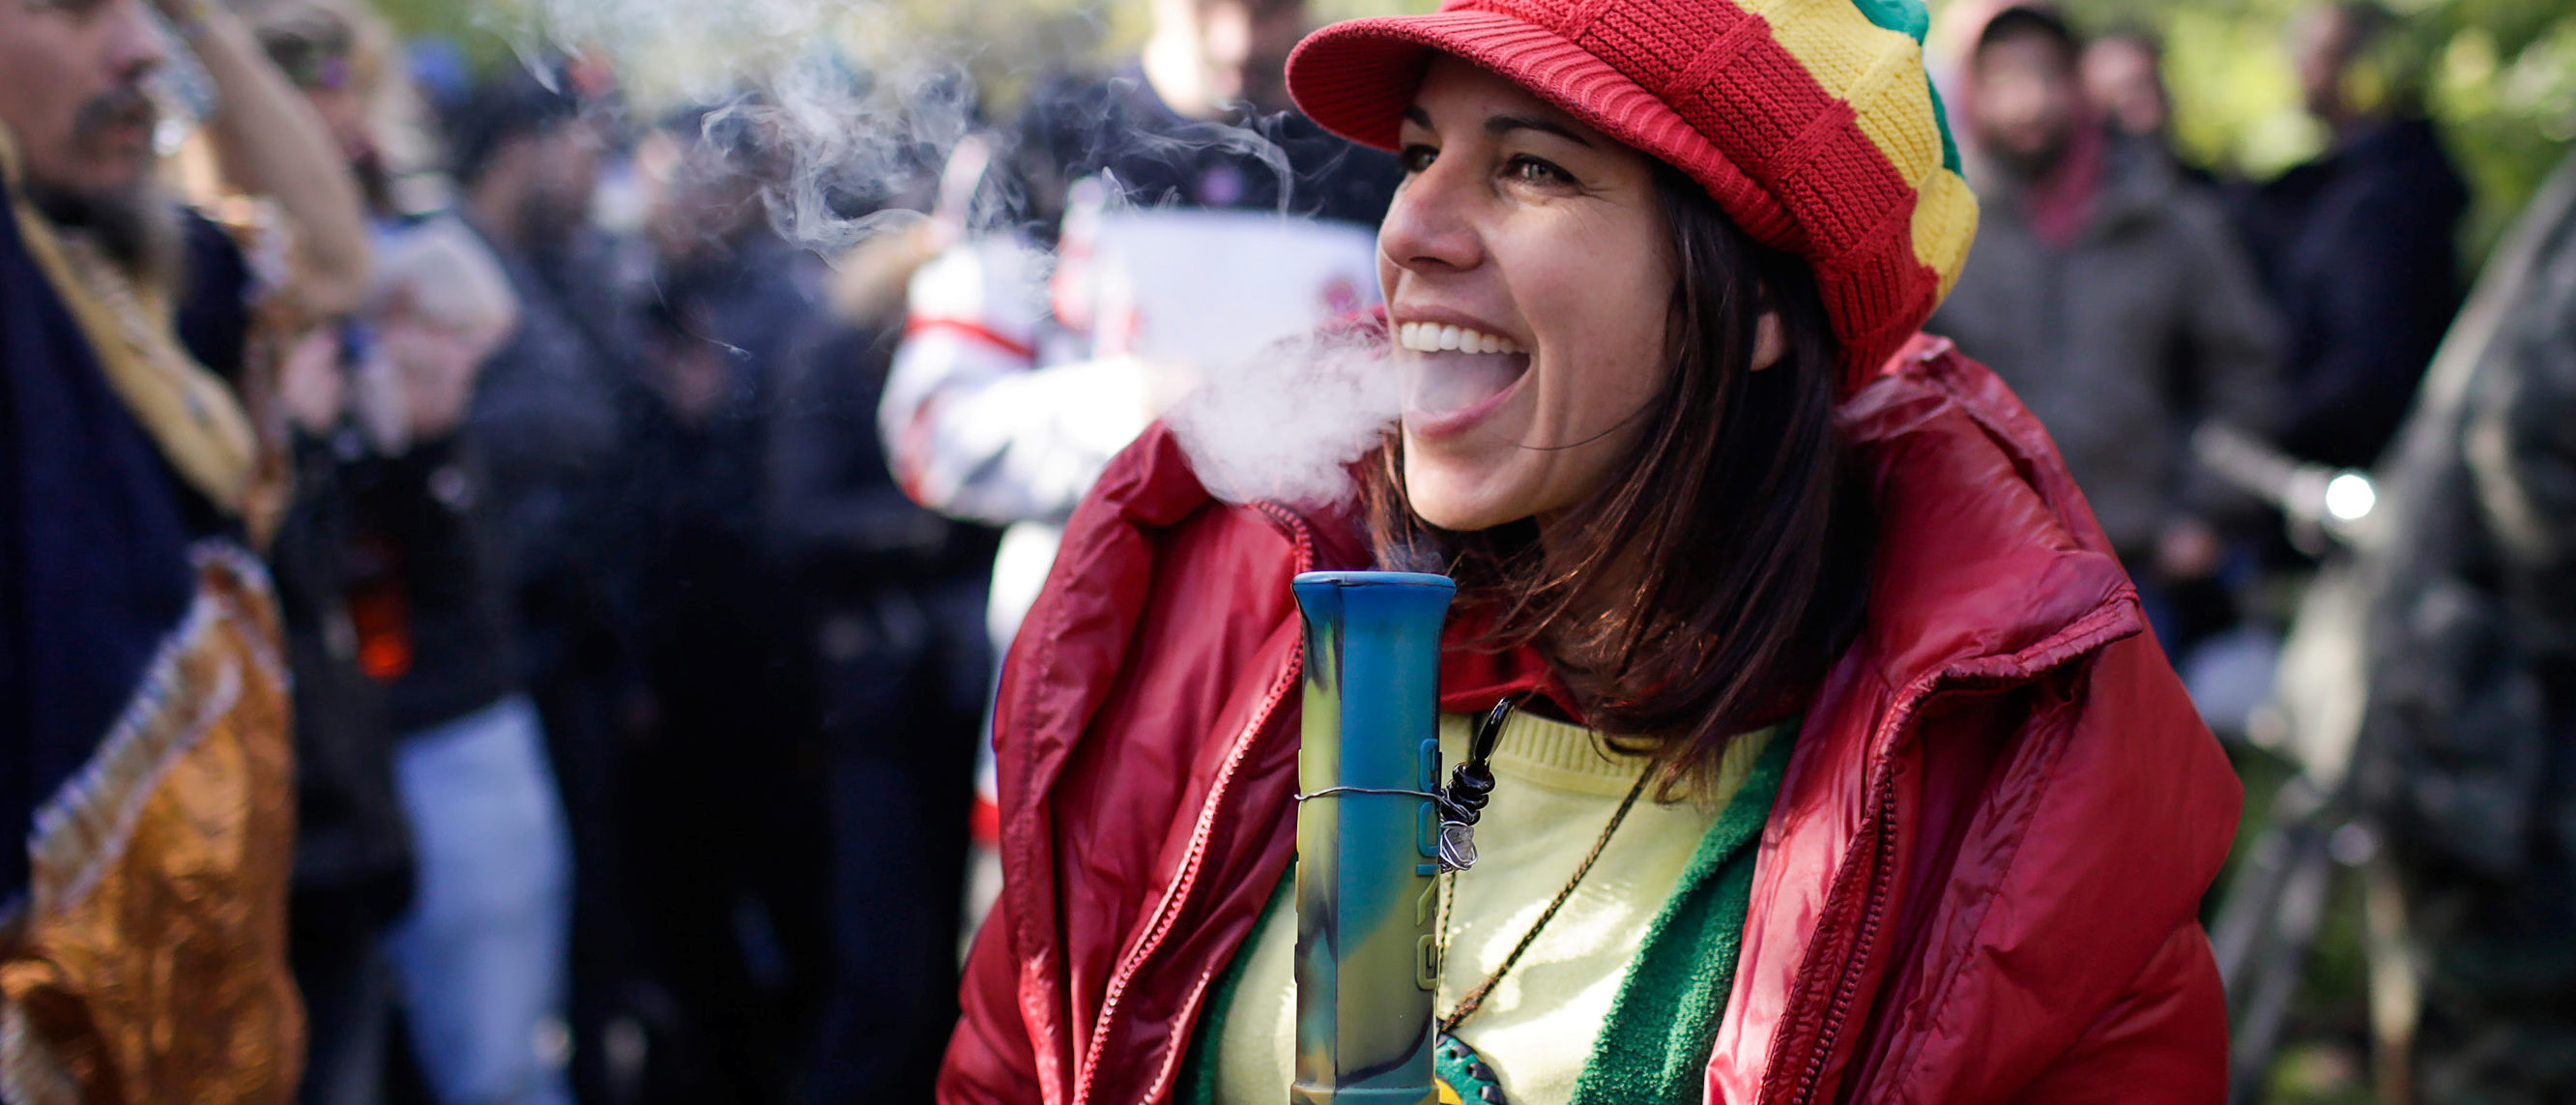 A woman smokes a bong on the day Canada legalizes recreational marijuana at Trinity Bellwoods Park, in Toronto, Ontario, Canada, October 17, 2018. REUTERS/Carlos Osorio